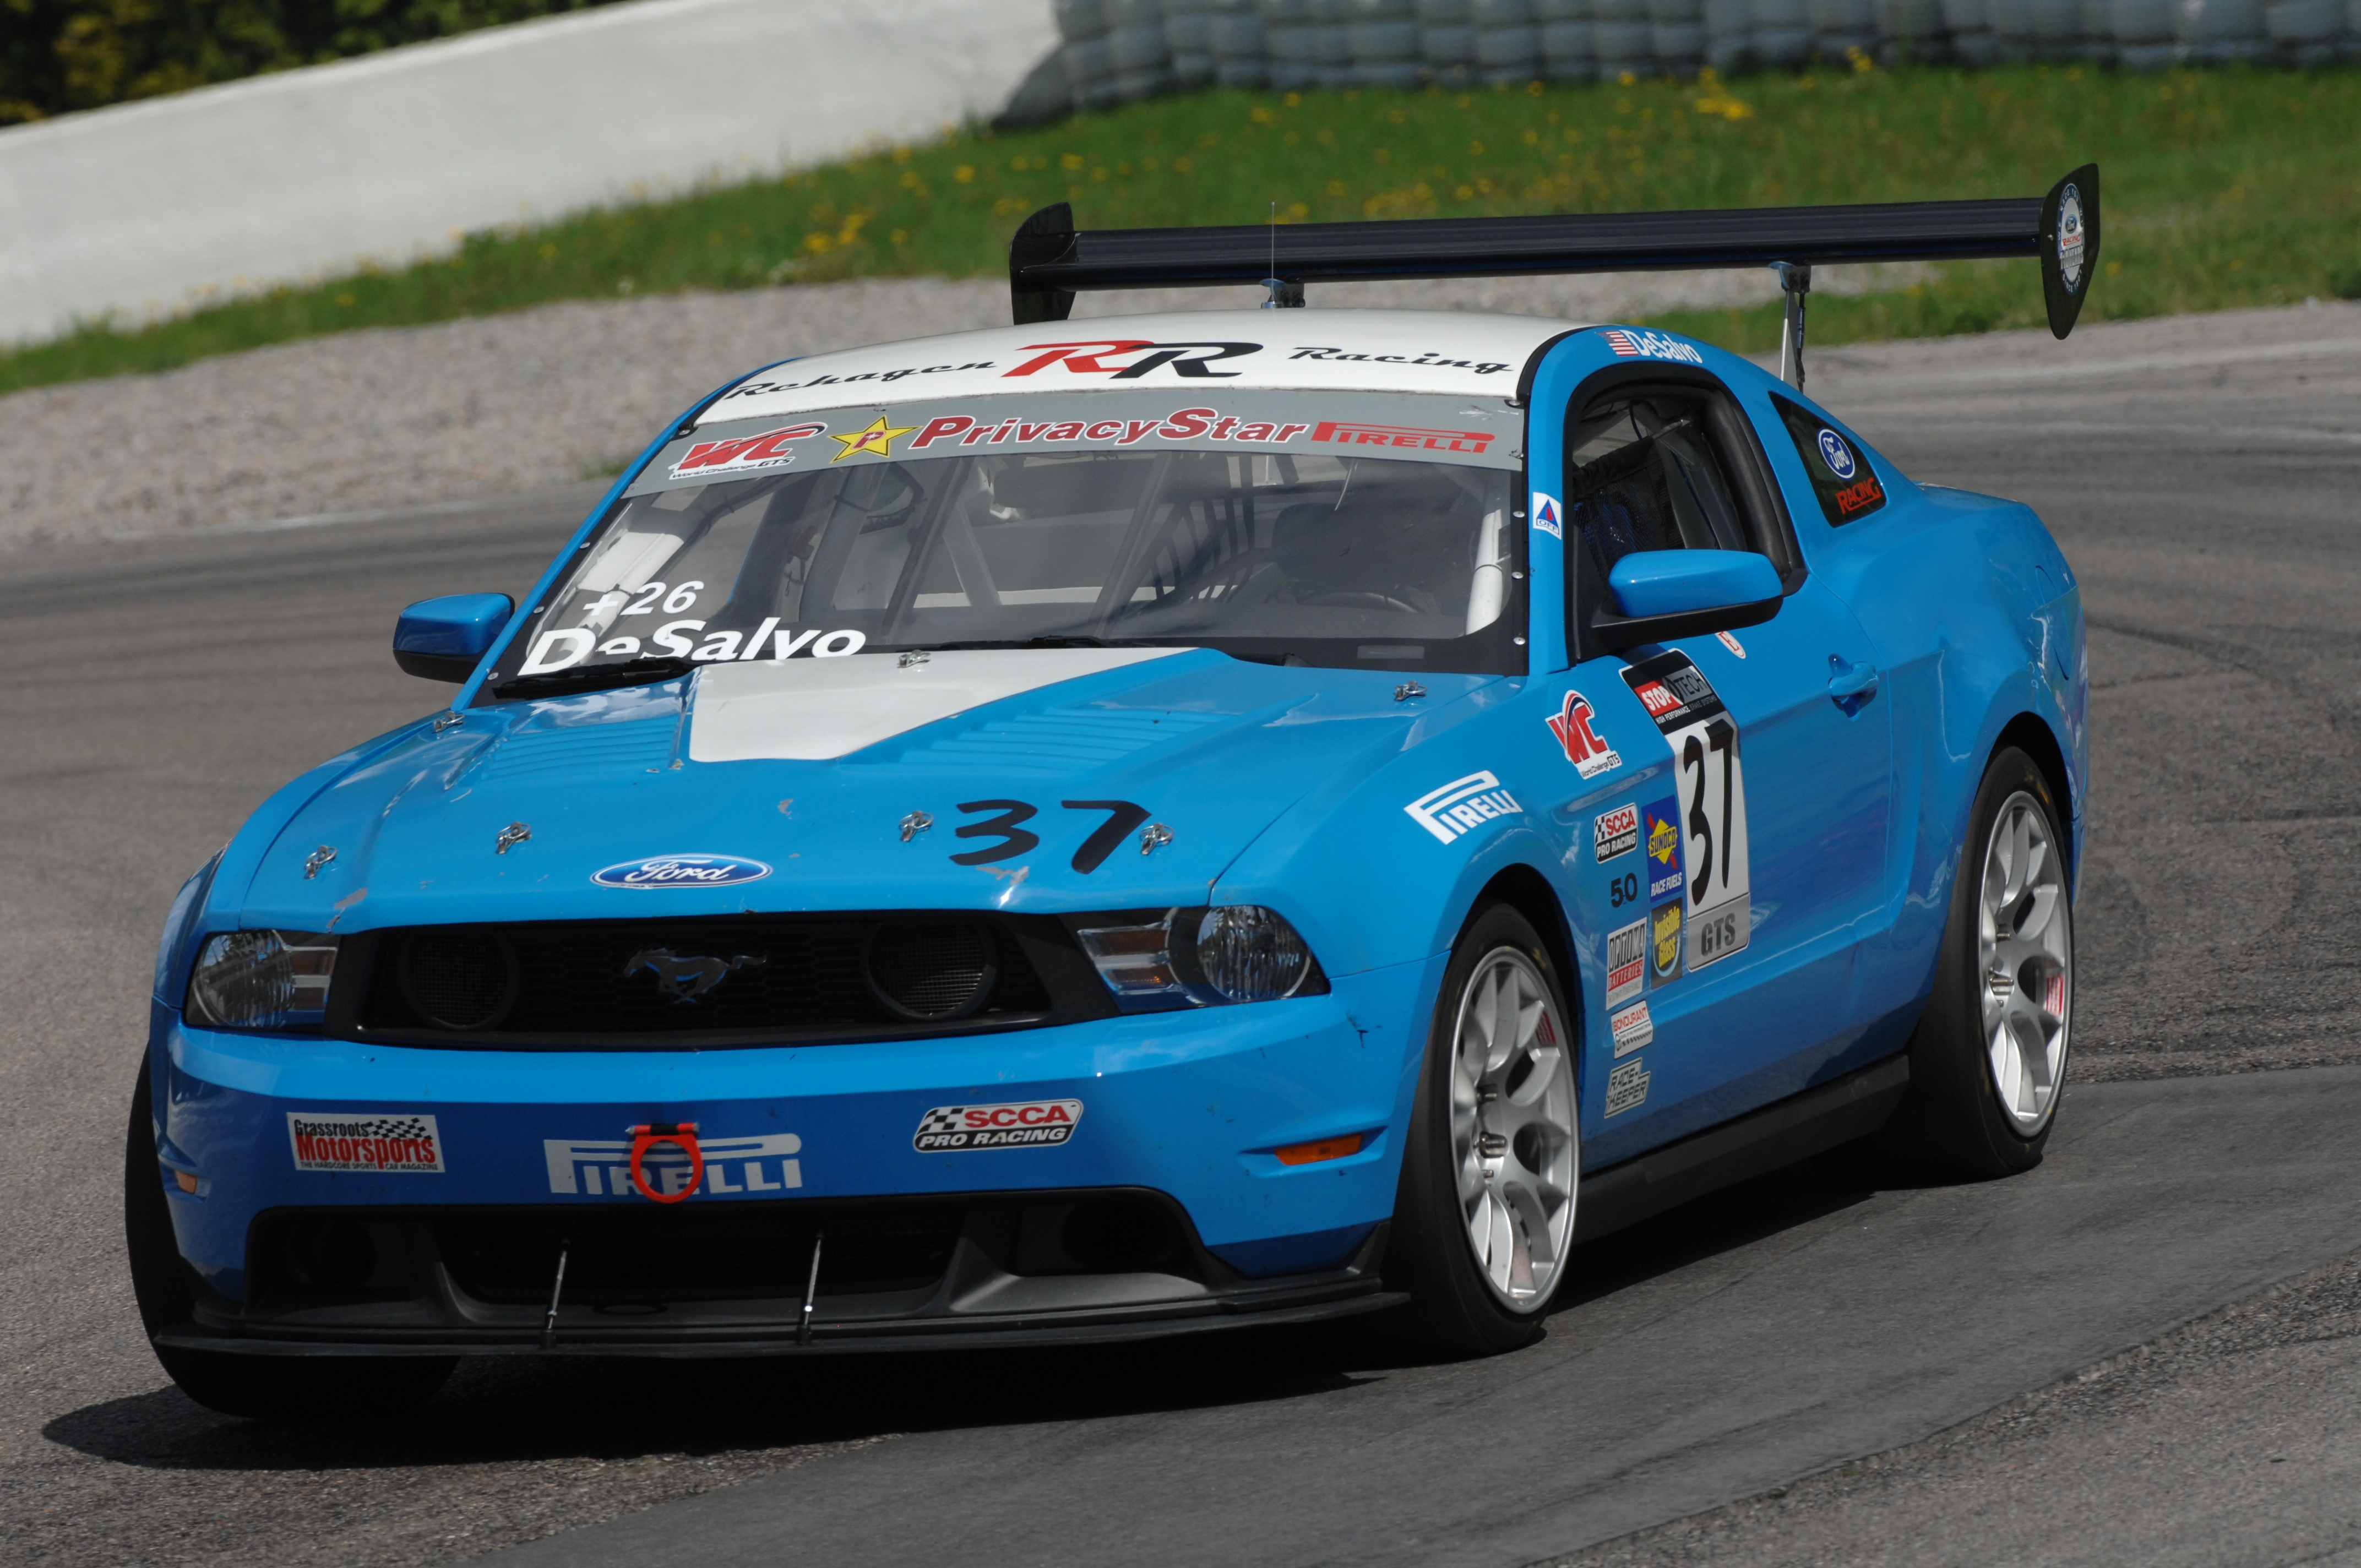 sb31767's 2012 Ford Mustang